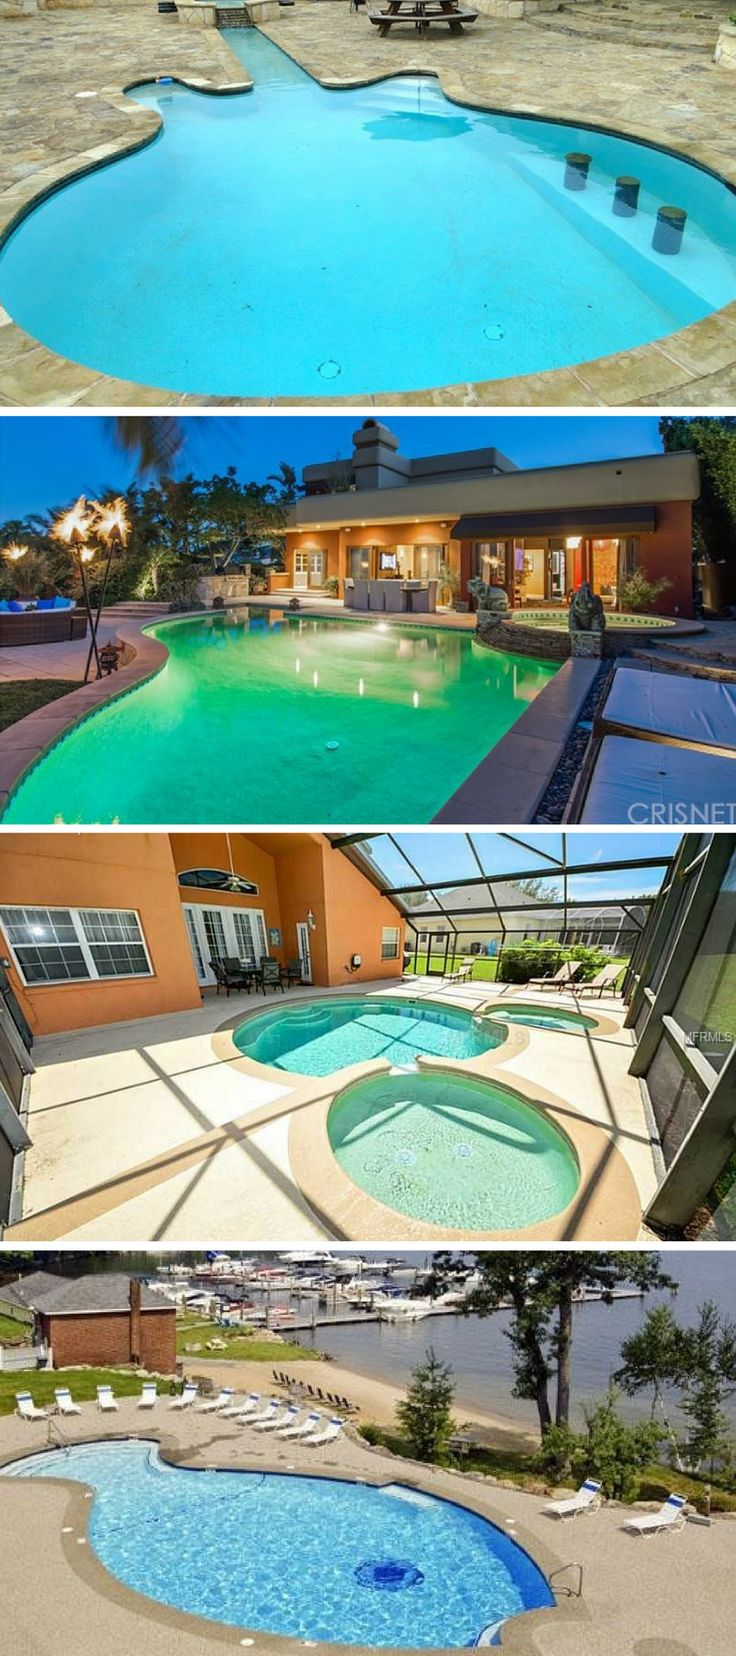 262 best Pools images on Pinterest | Real estates, Beautiful homes ...